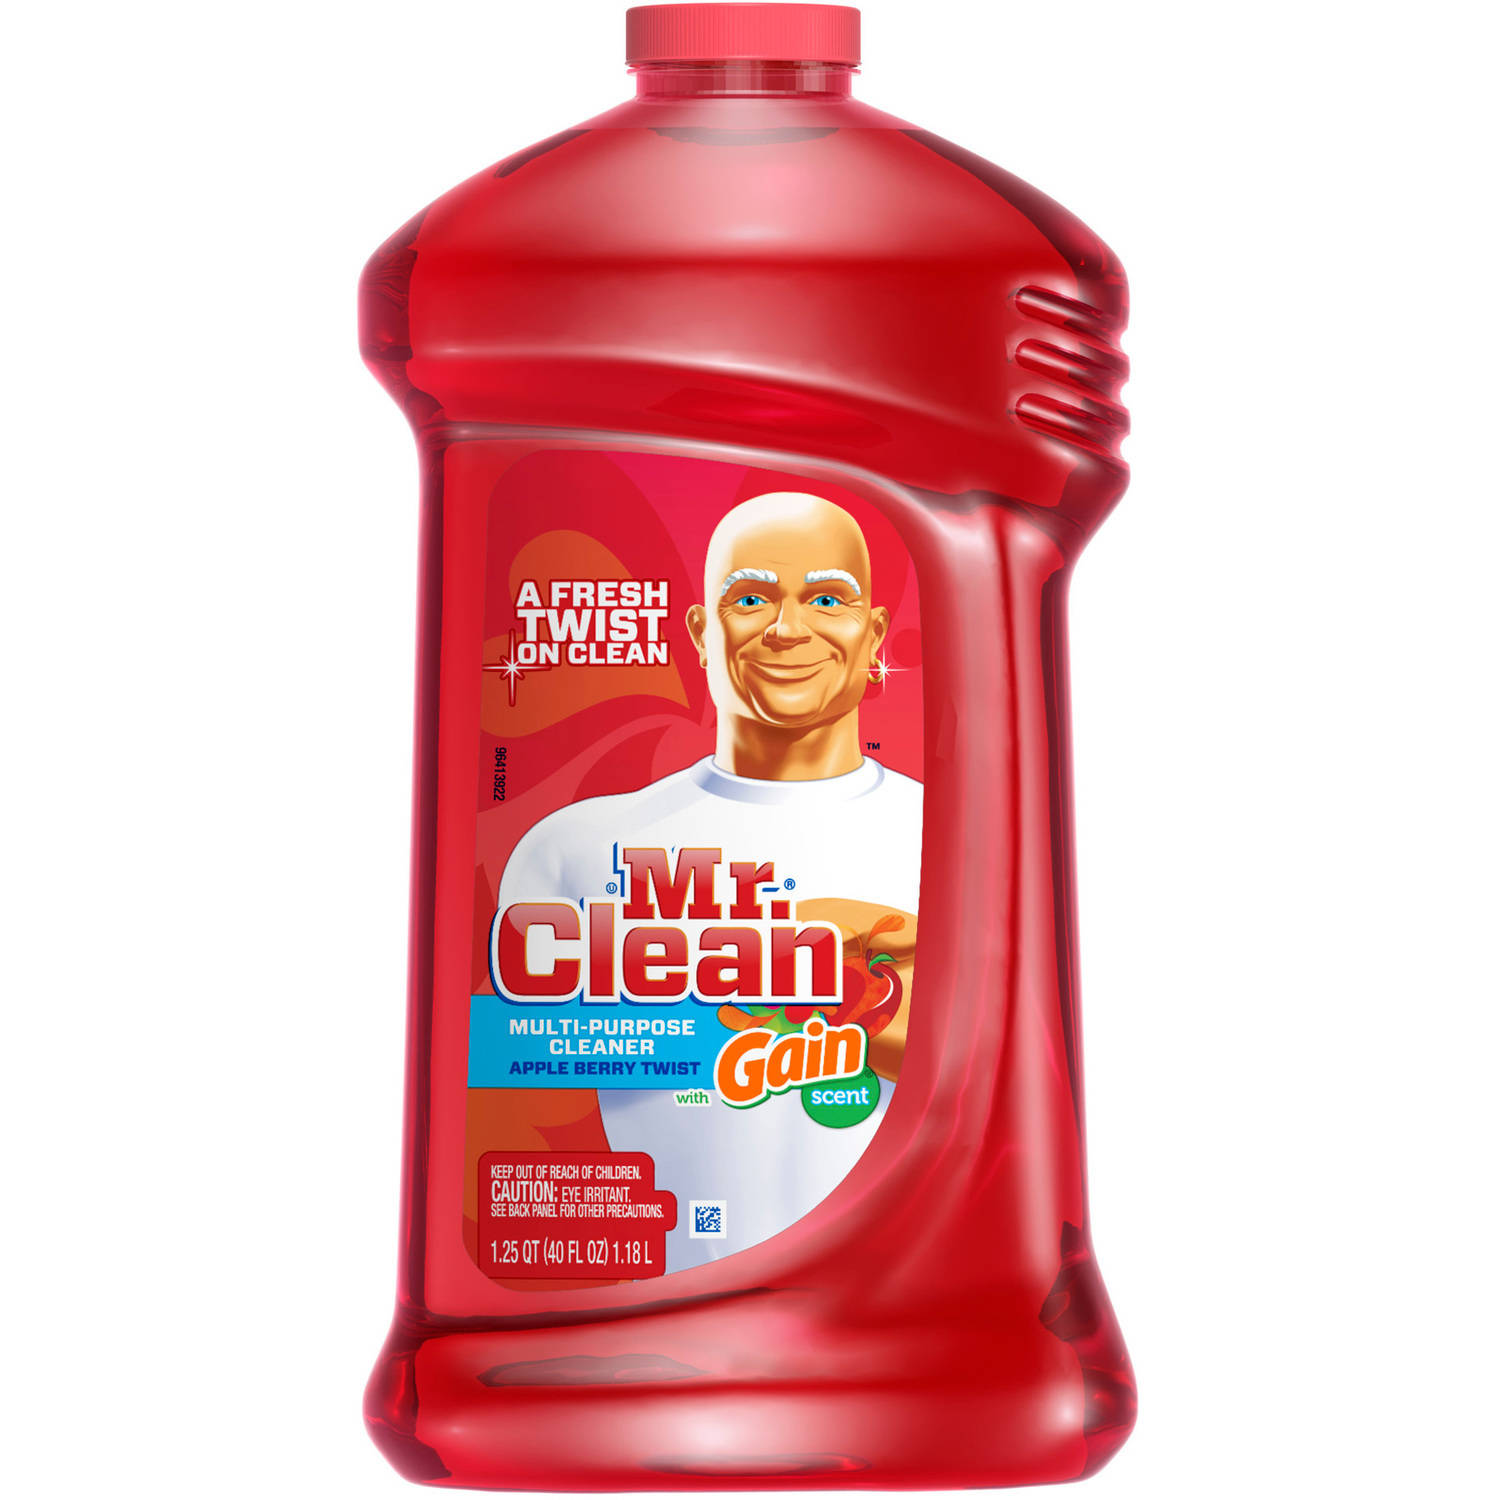 Mr. Clean Apple Berry Twist with Gain Scent Multi-Purpose Cleaner, 40 fl oz